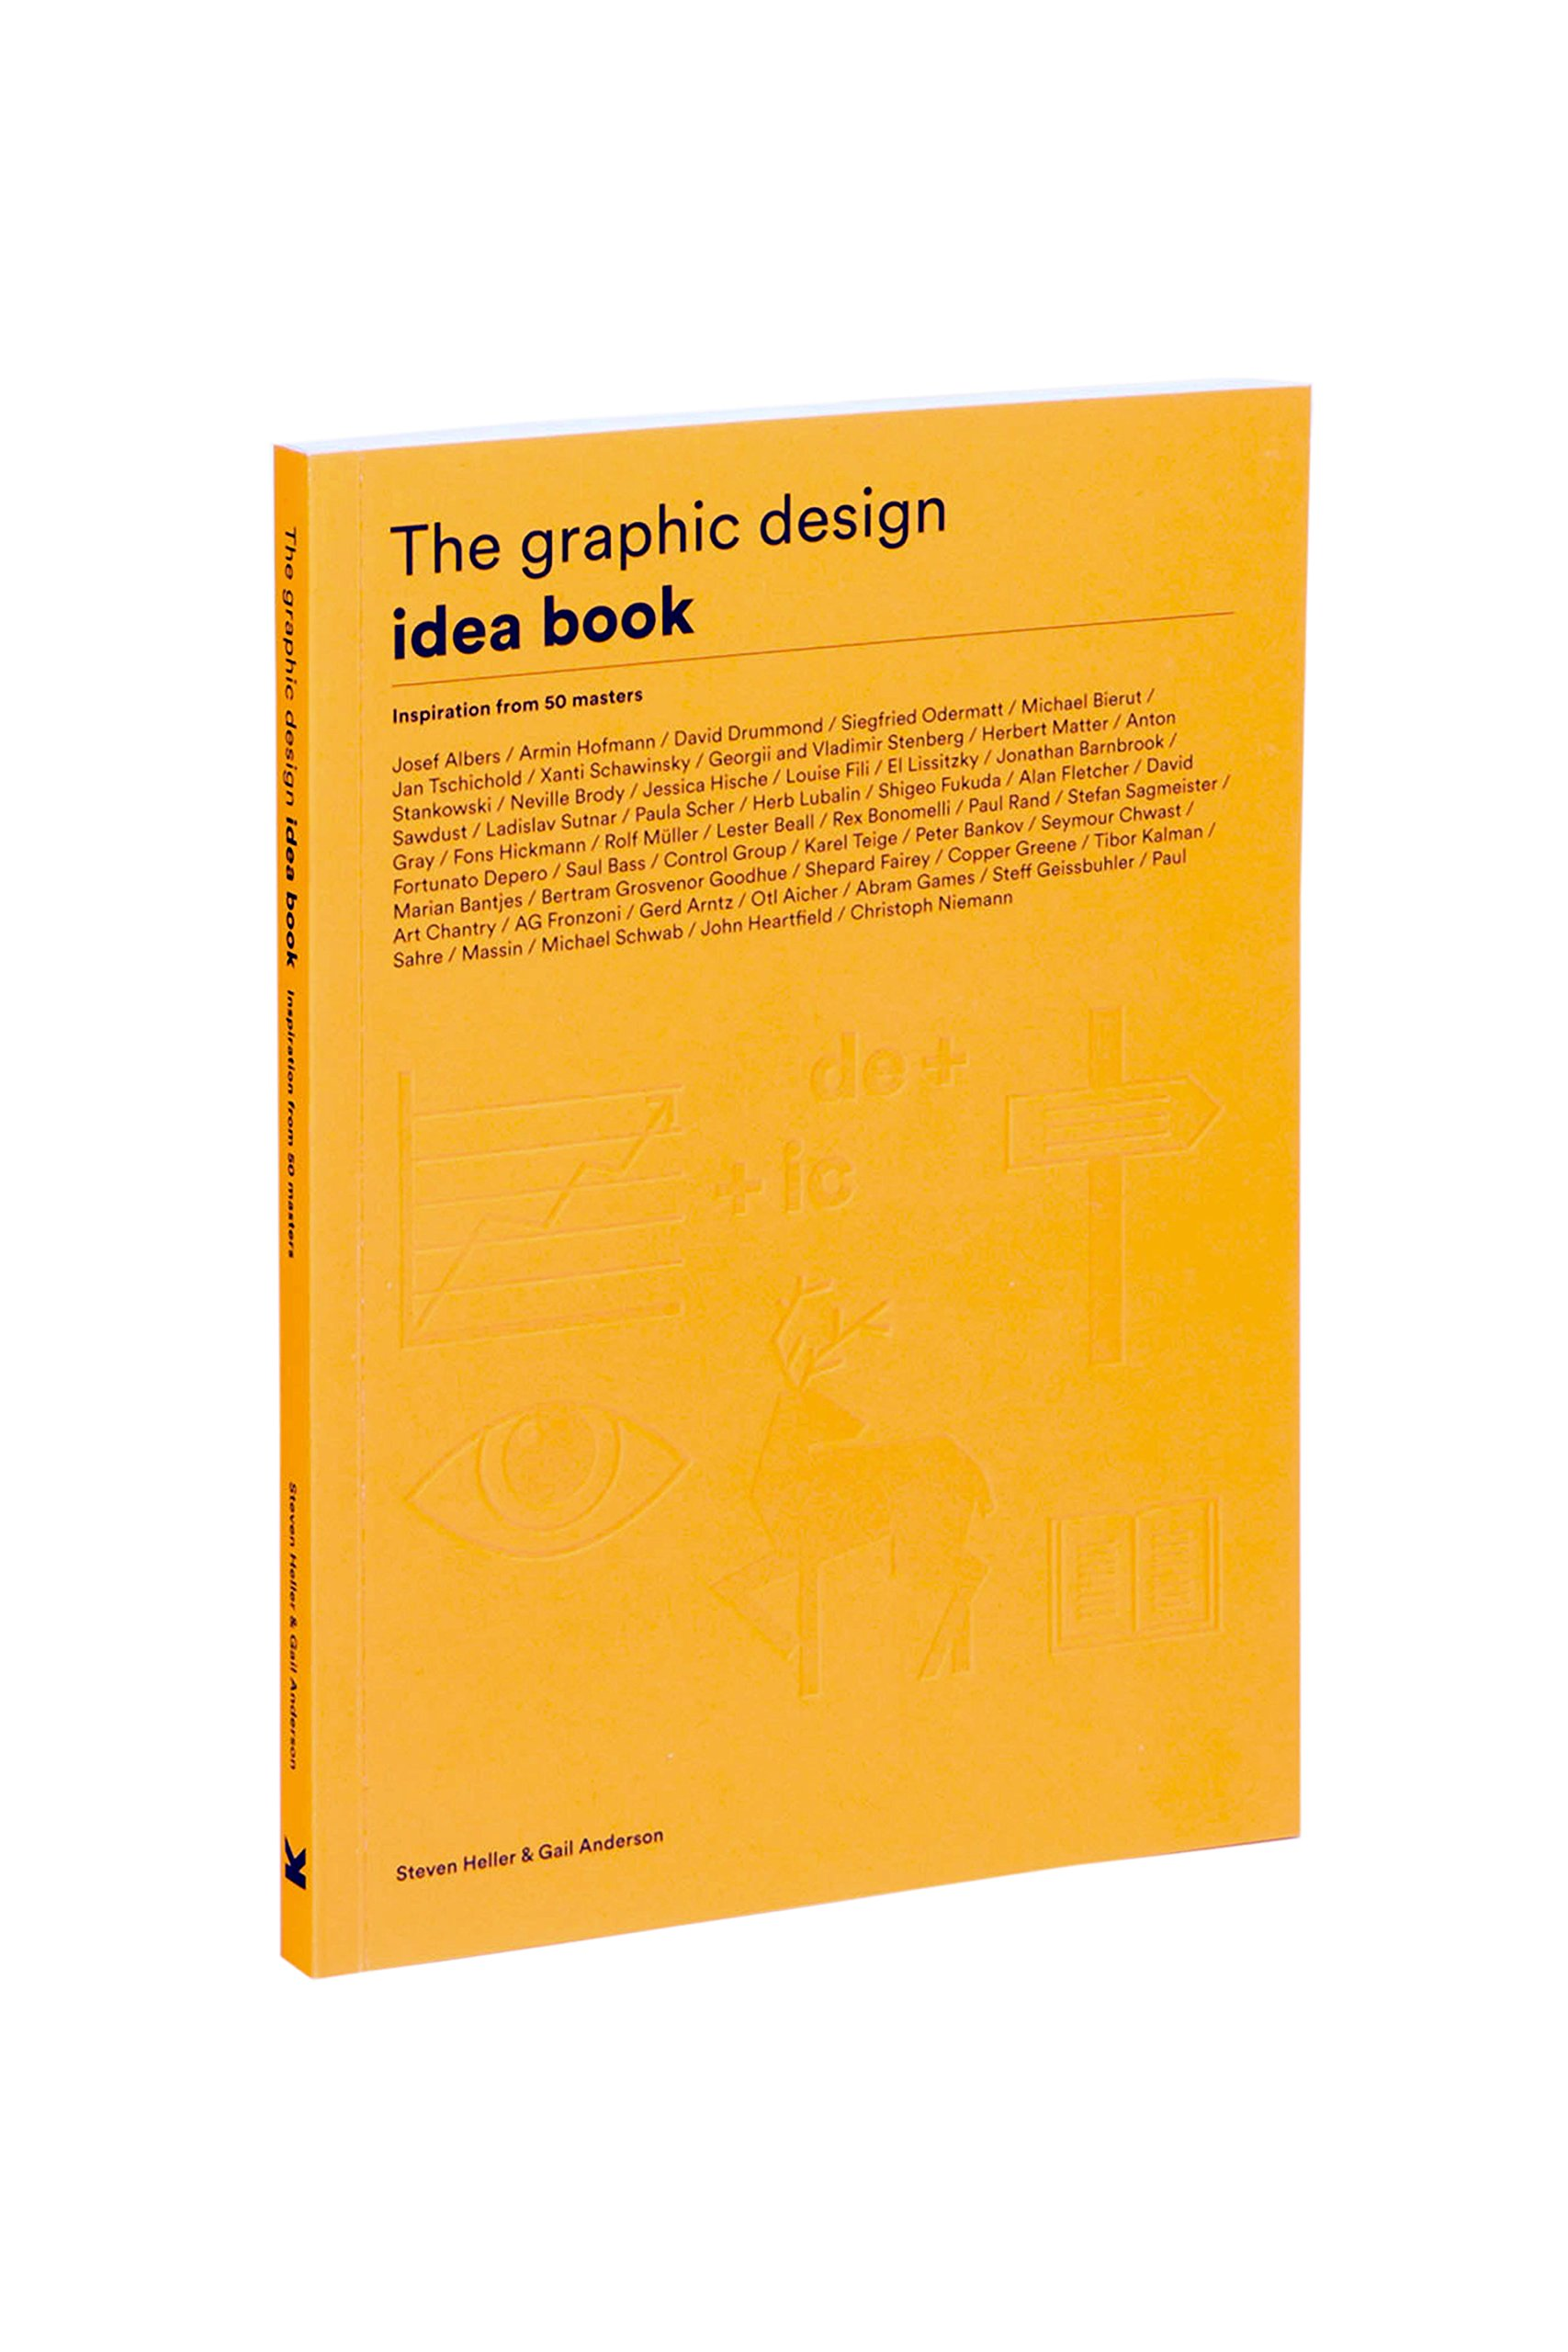 Stevenphan s ideas an ideabook by stevenphan - The Graphic Design Idea Book Inspiration From 50 Masters Steven Heller Gail Anderson 9781780677569 Amazon Com Books